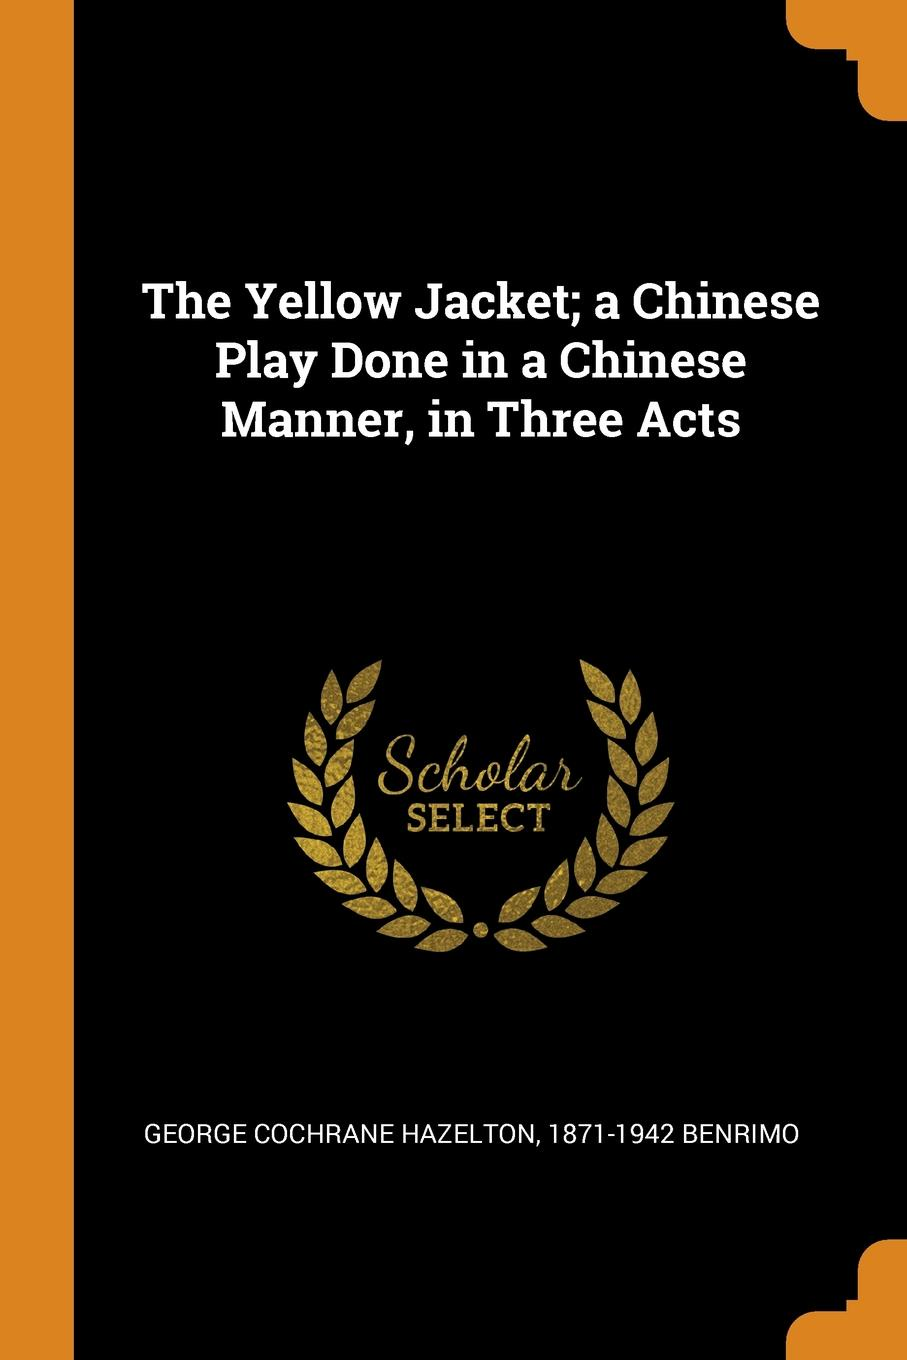 George Cochrane Hazelton, 1871-1942 Benrimo The Yellow Jacket; a Chinese Play Done in a Chinese Manner, in Three Acts